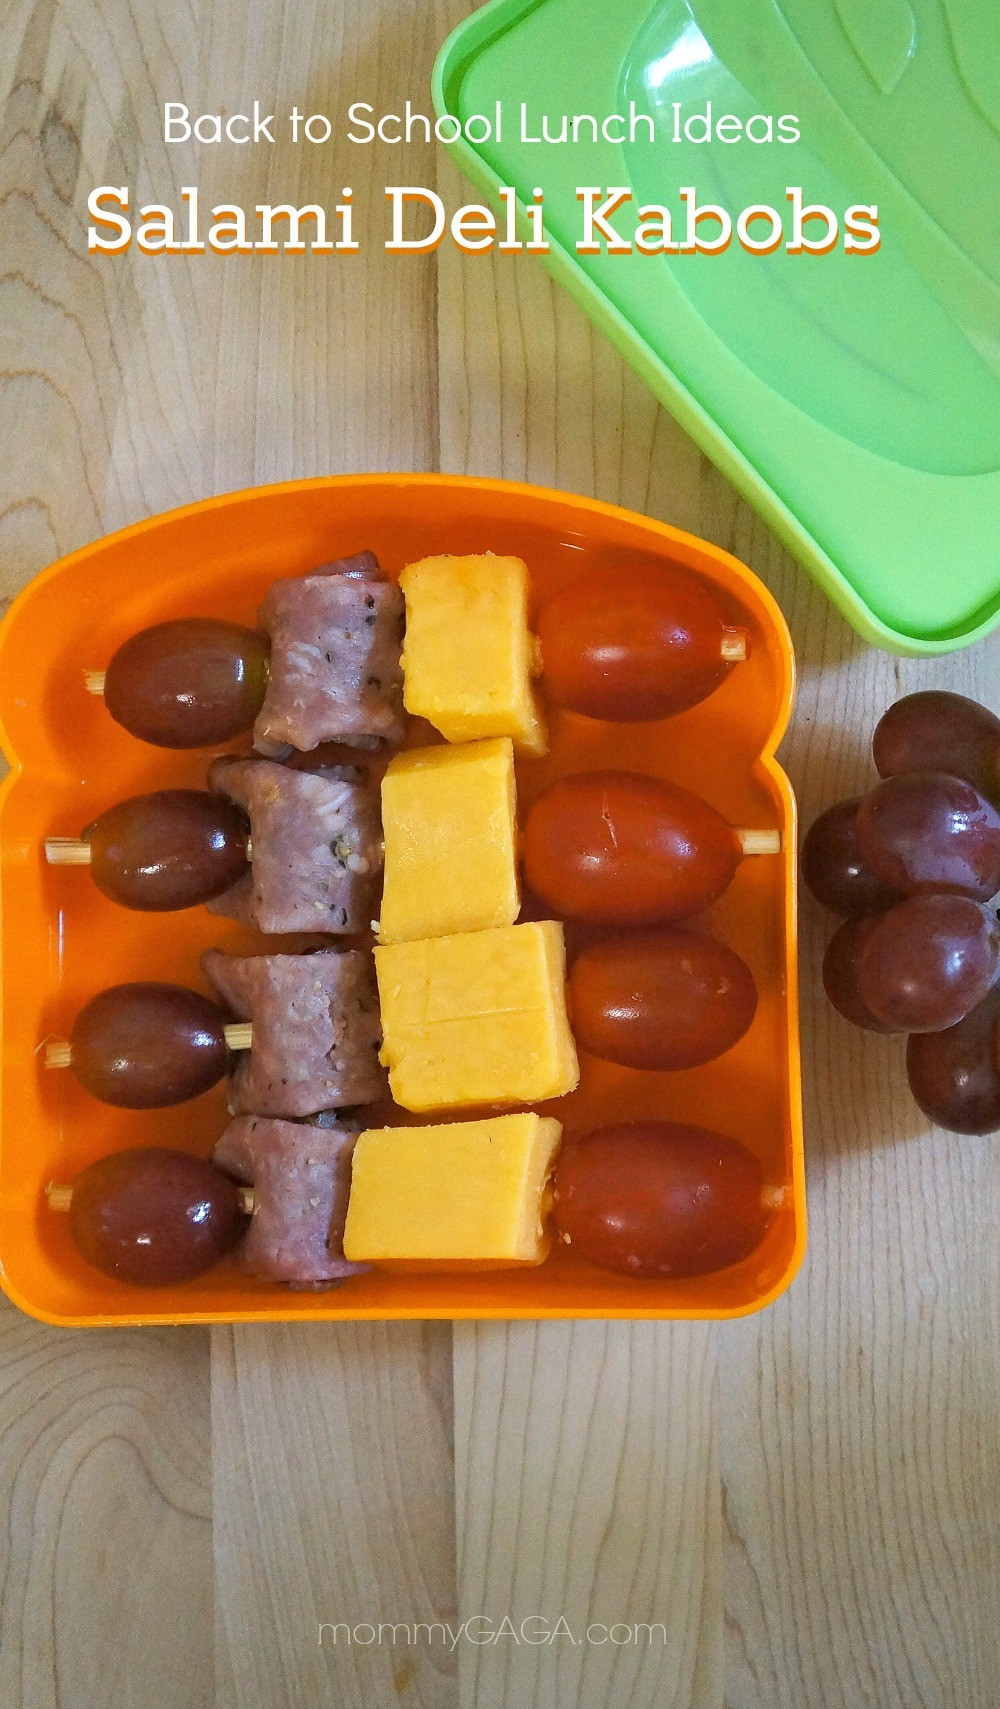 School lunch idea Salami Deli Kabobs for School Lunch